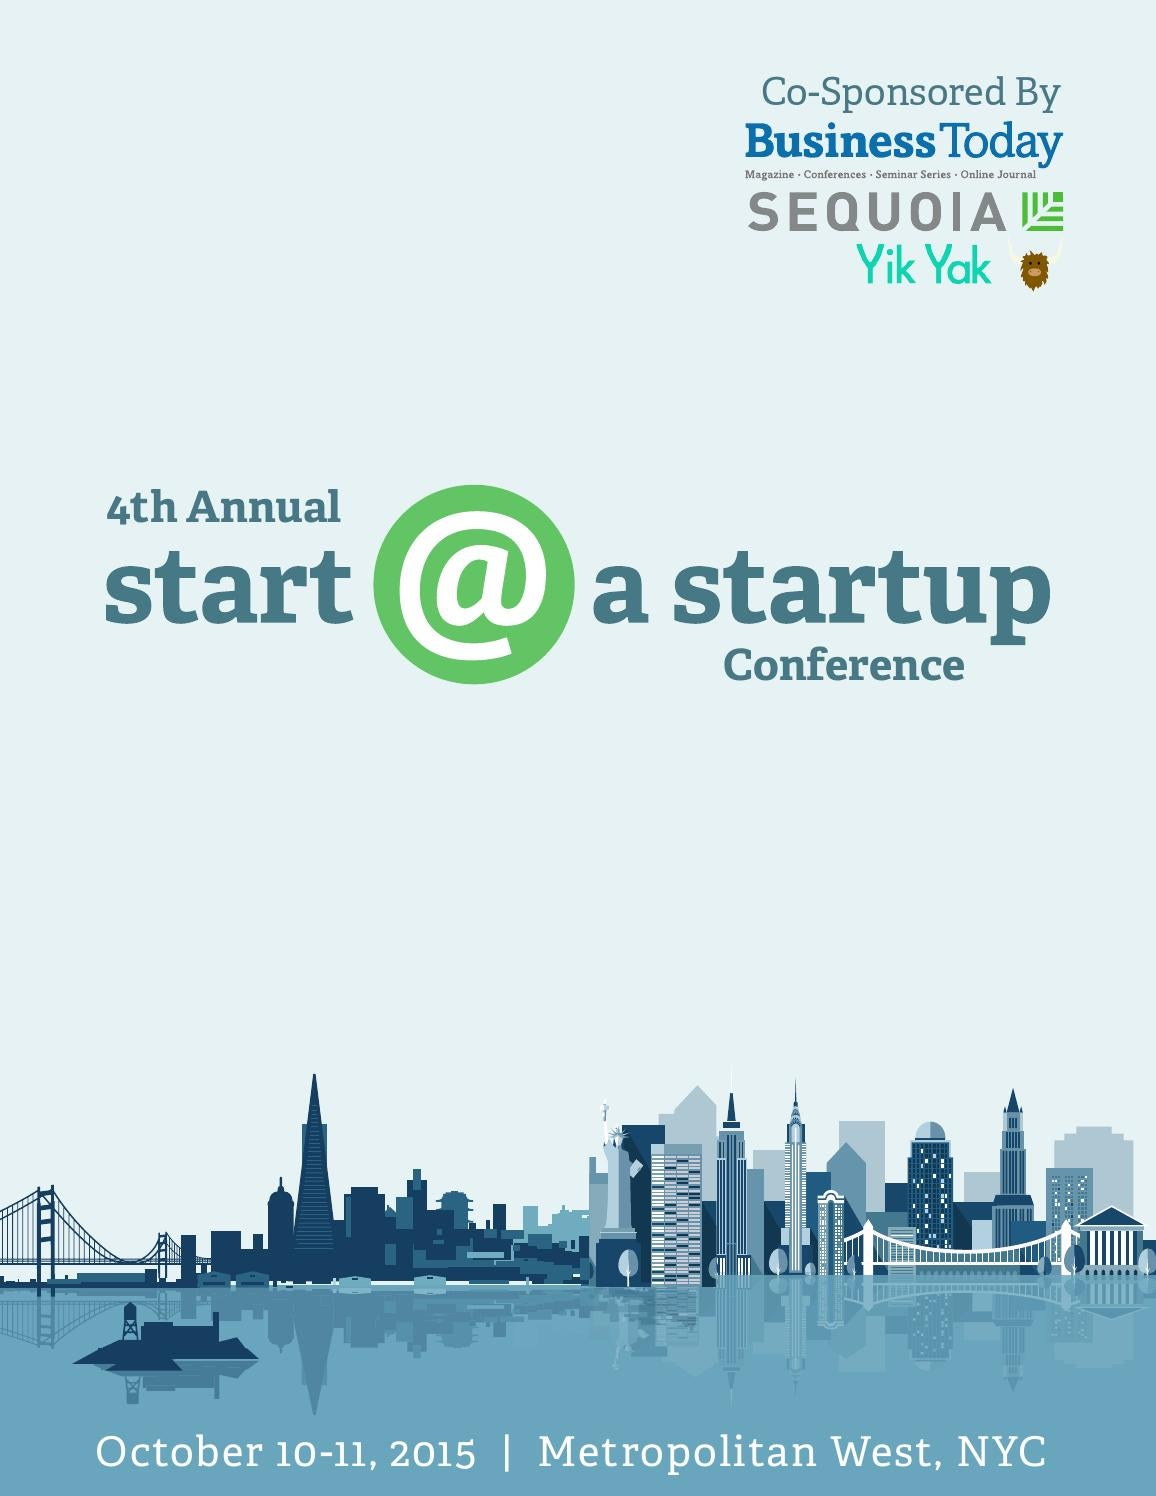 Business Today's 4th Annual Start @ A Startup Conference